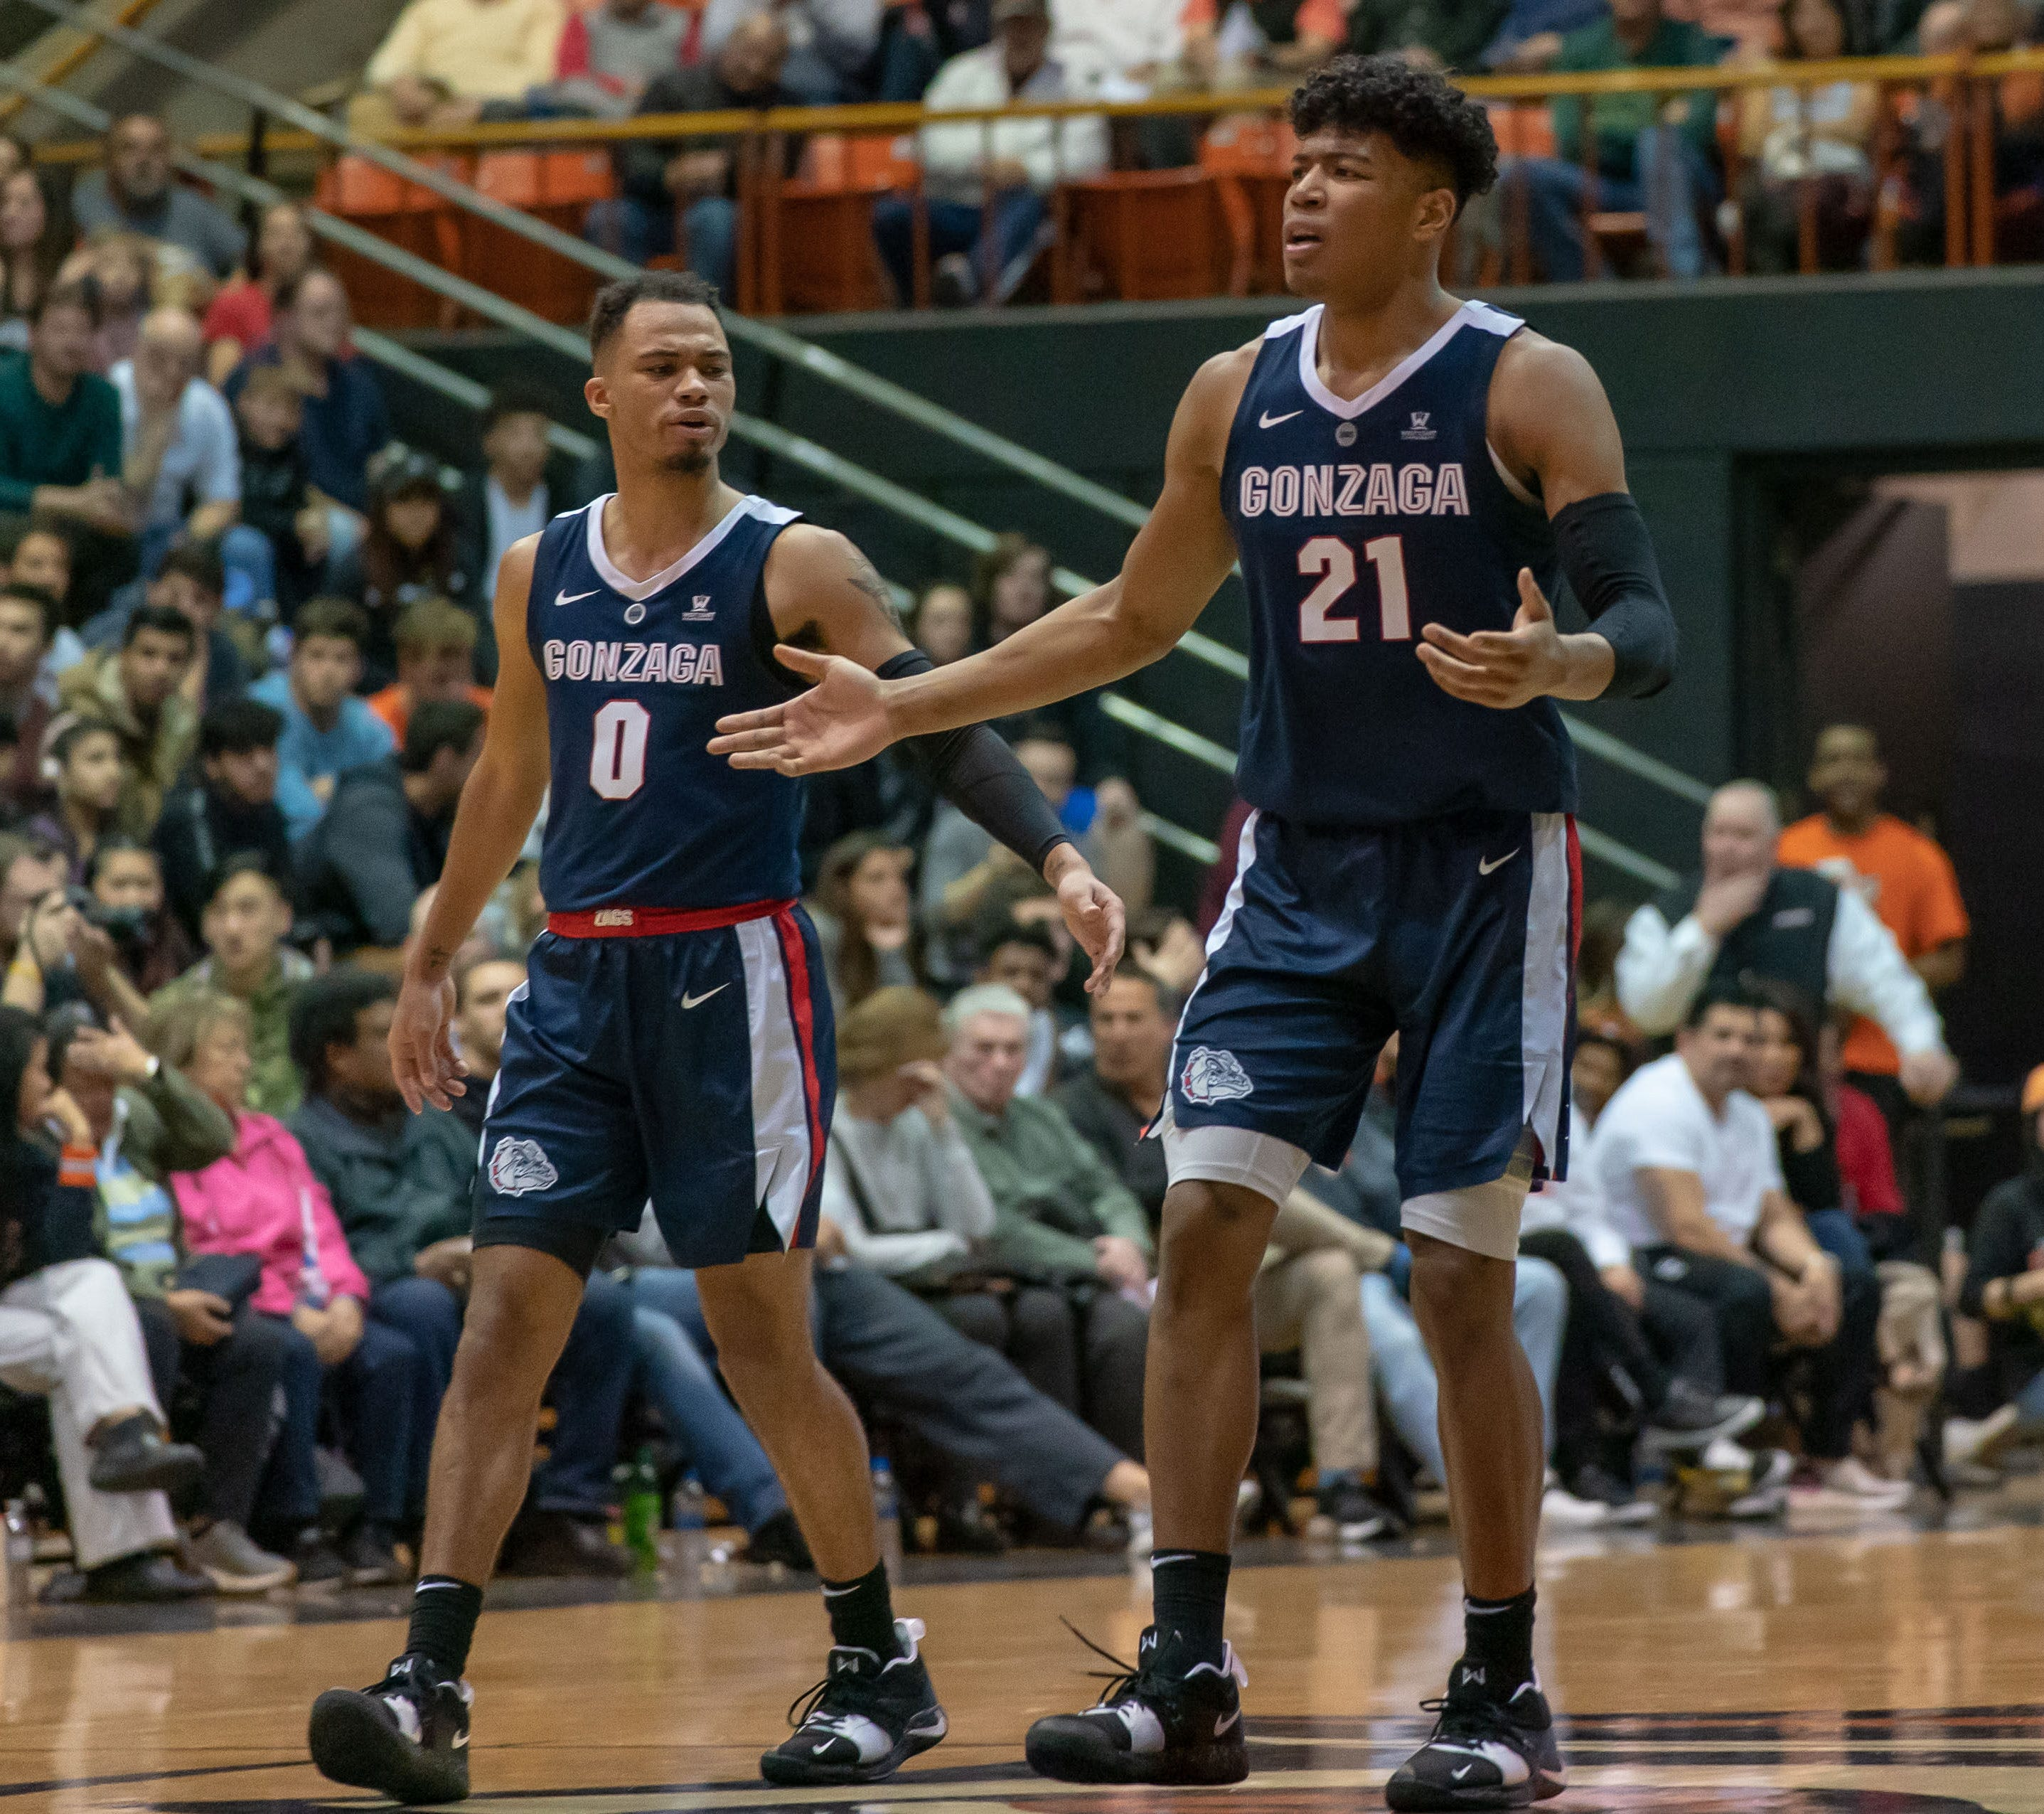 Gonzaga forward Rui Hachimura (21) questions the referee during the second half against Pacific.